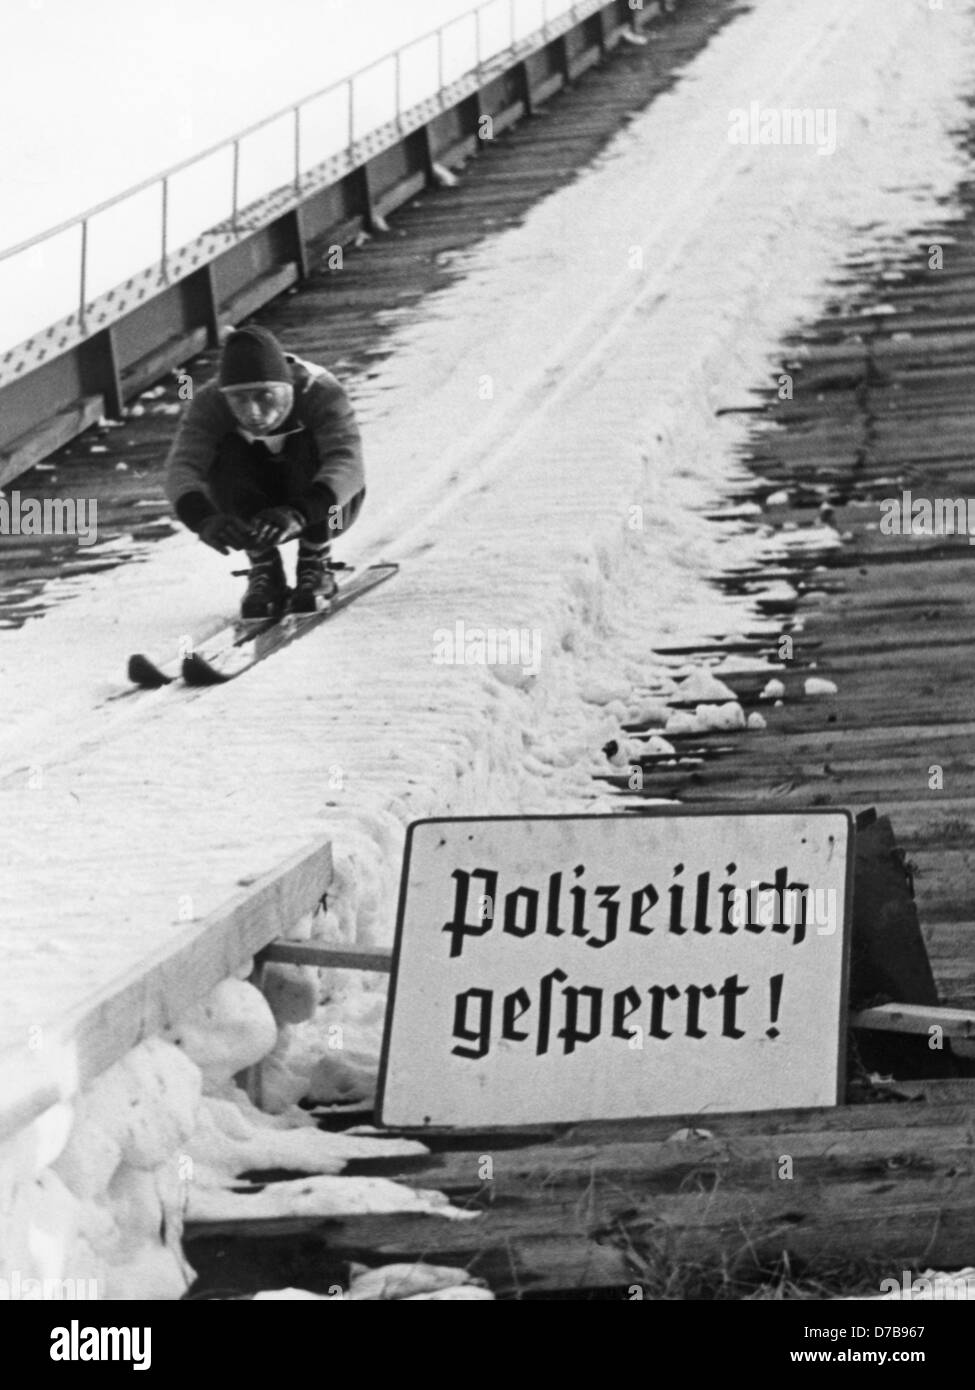 """Despite the sign saying """"Closed by the police"""", Max Bolkart sets for his jump of eighty metres on the """"Grosse Olympiaschanze"""" in Garmisch-Partenkirchen at the traditional New Years tournament in 1957. The police ban certainly did not affect the professionals. Stock Photo"""